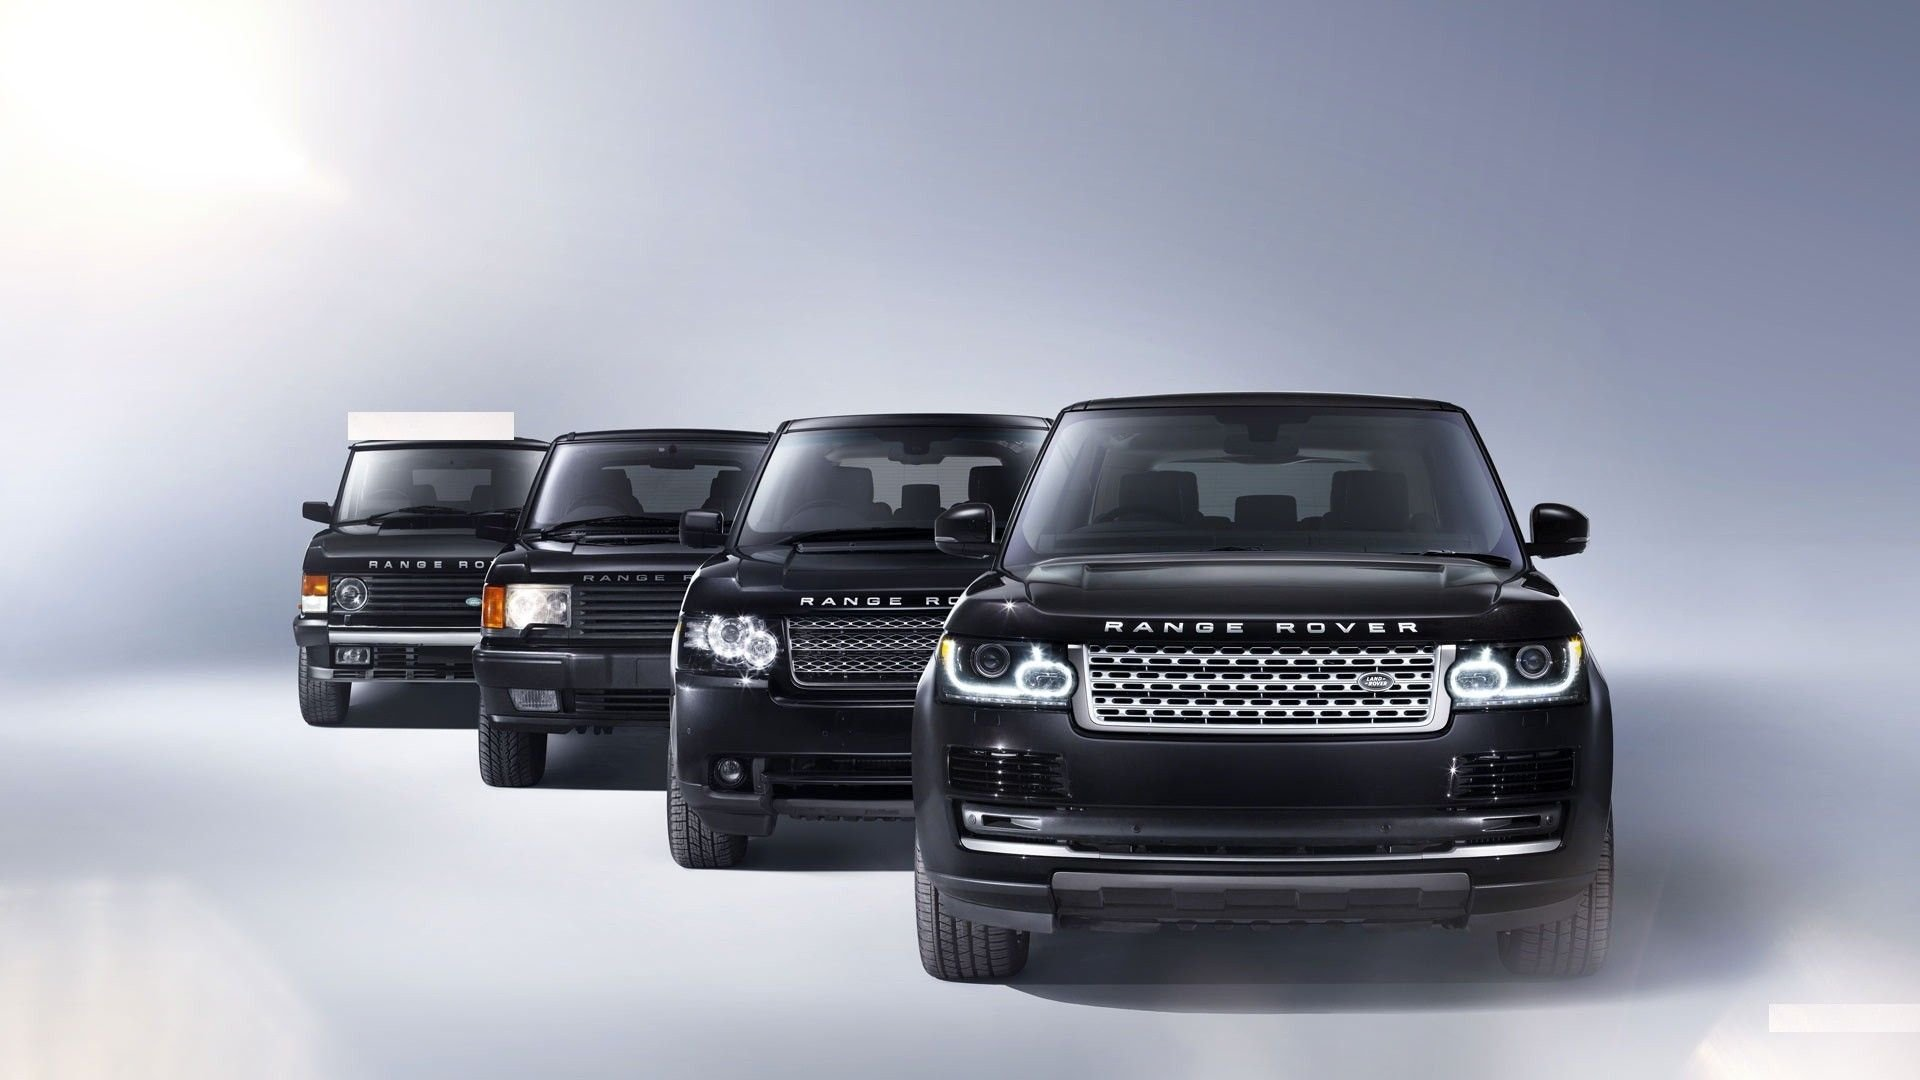 Latest Hd Range Rover Wallpapers Range Rover Background Images Free Download